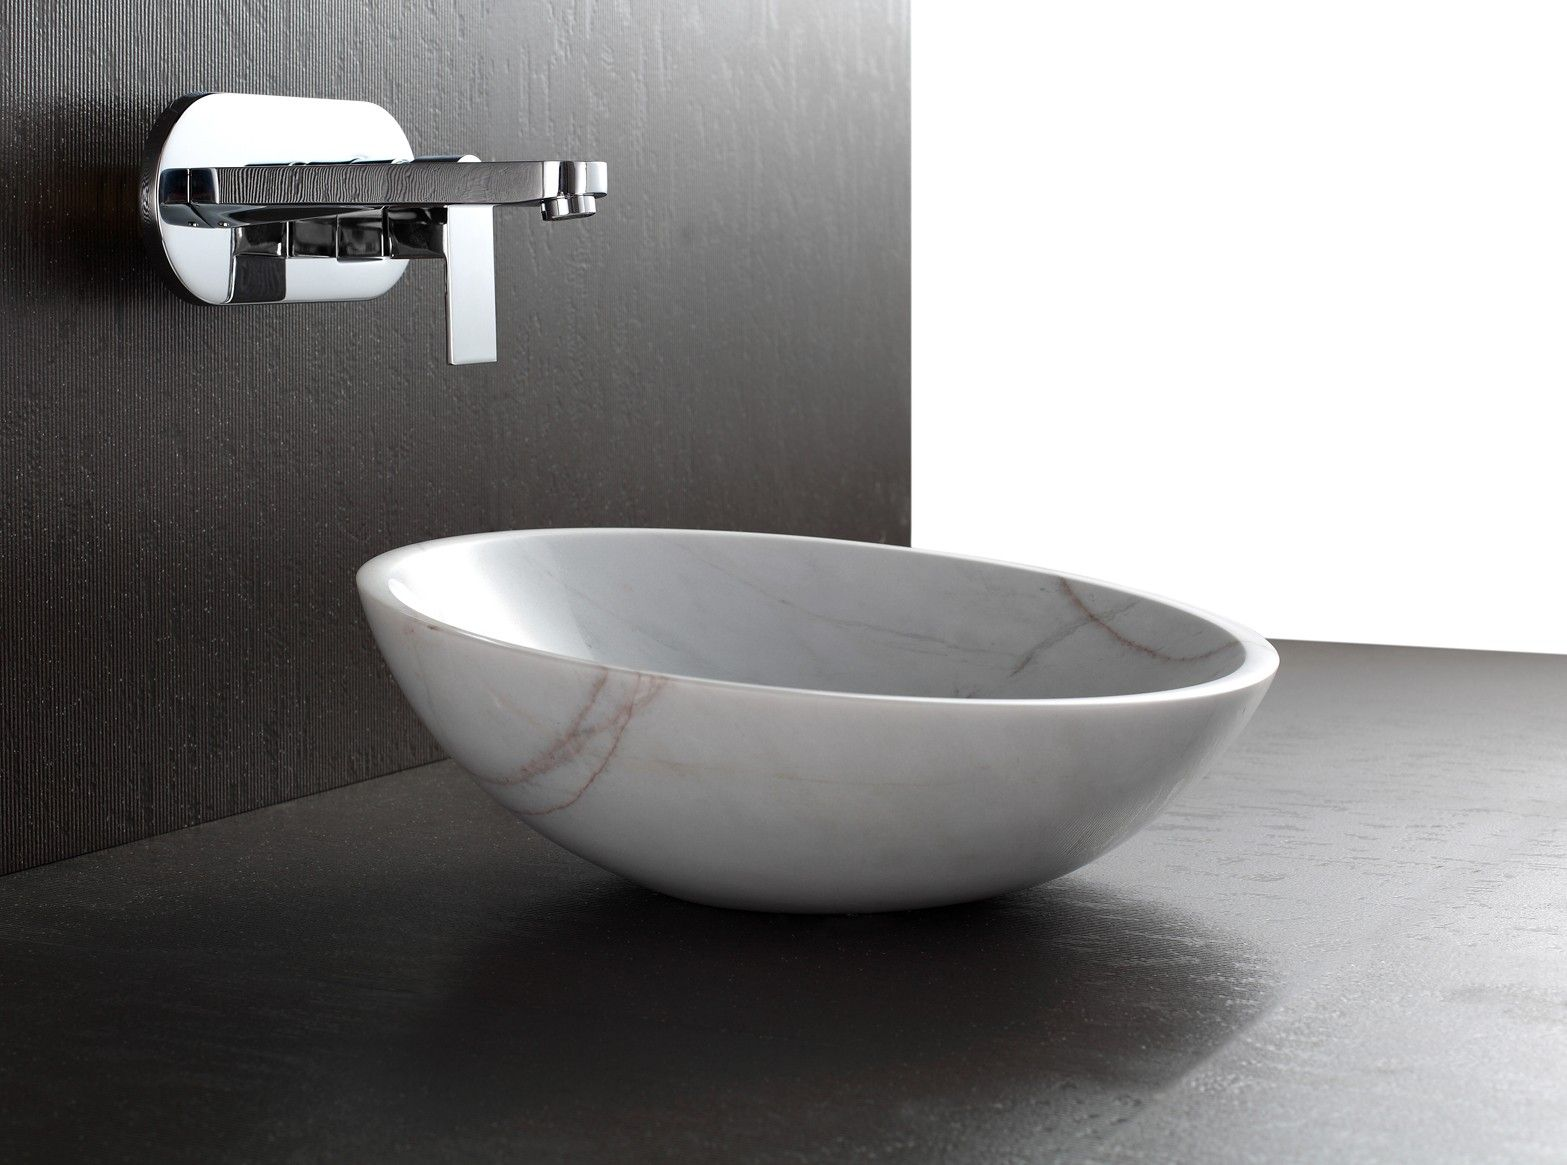 Modern Bathroom Sinks By Nova Deko Part 51